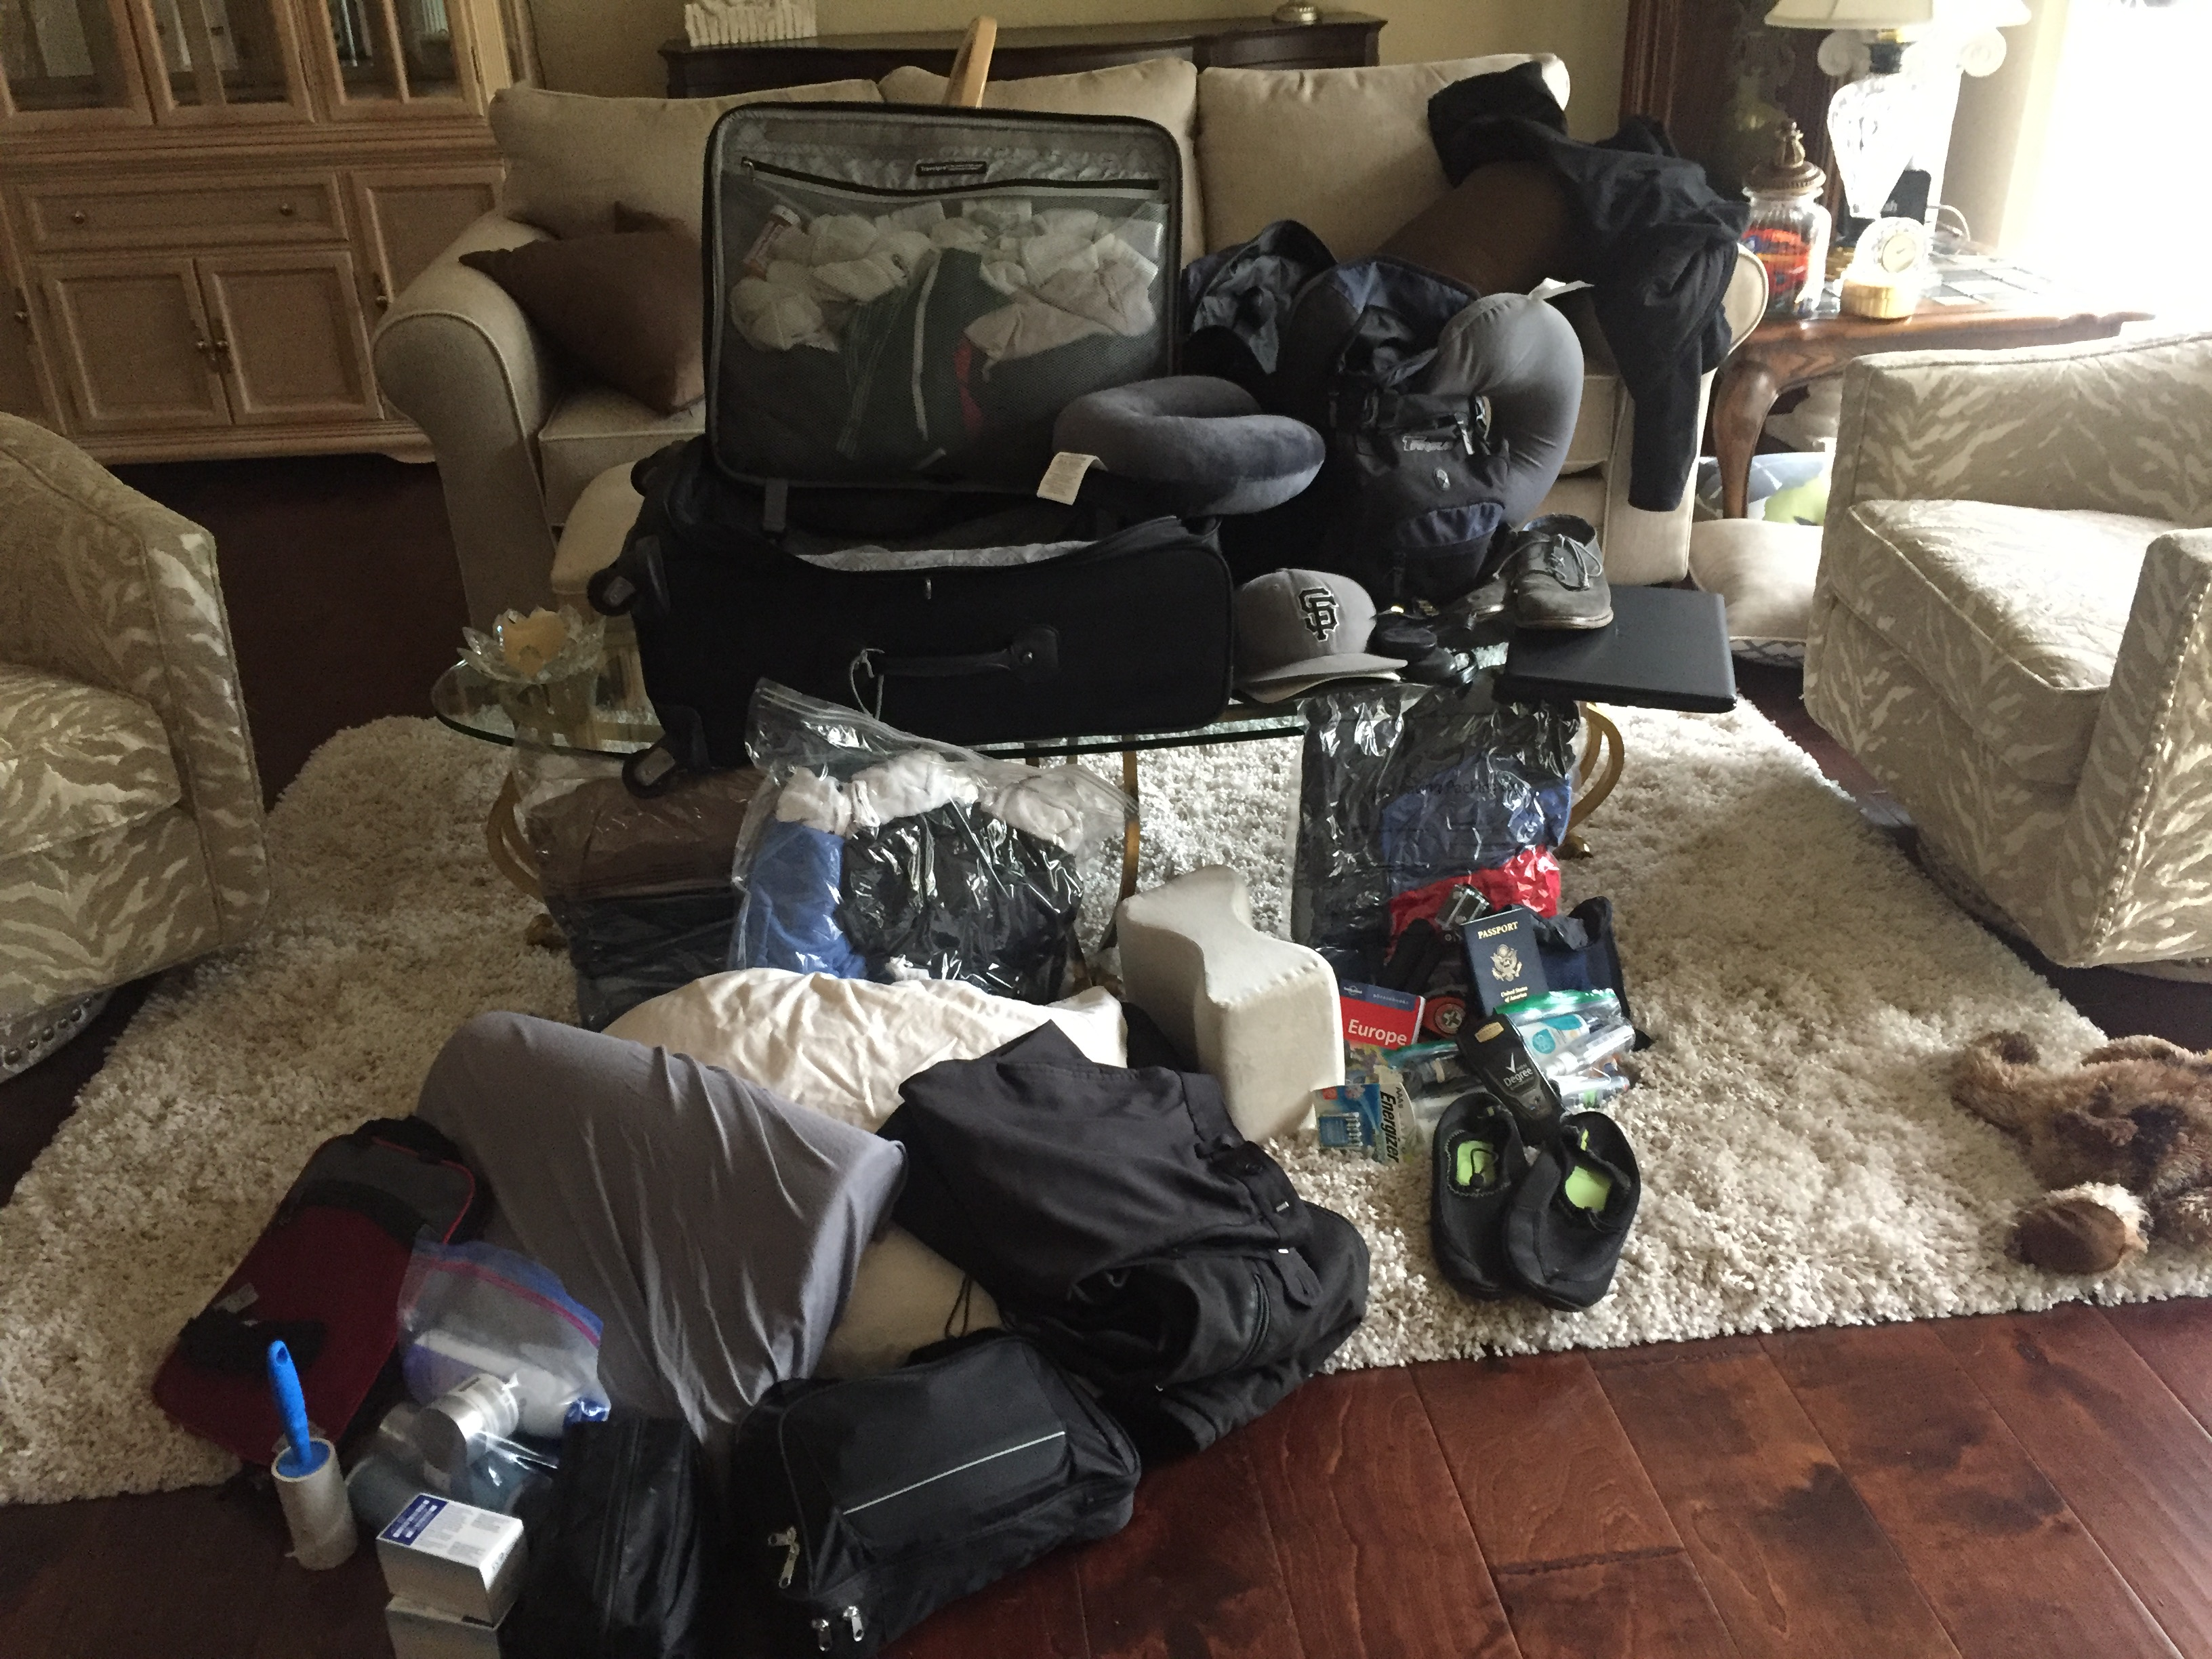 Everything we packed in our Suitcase